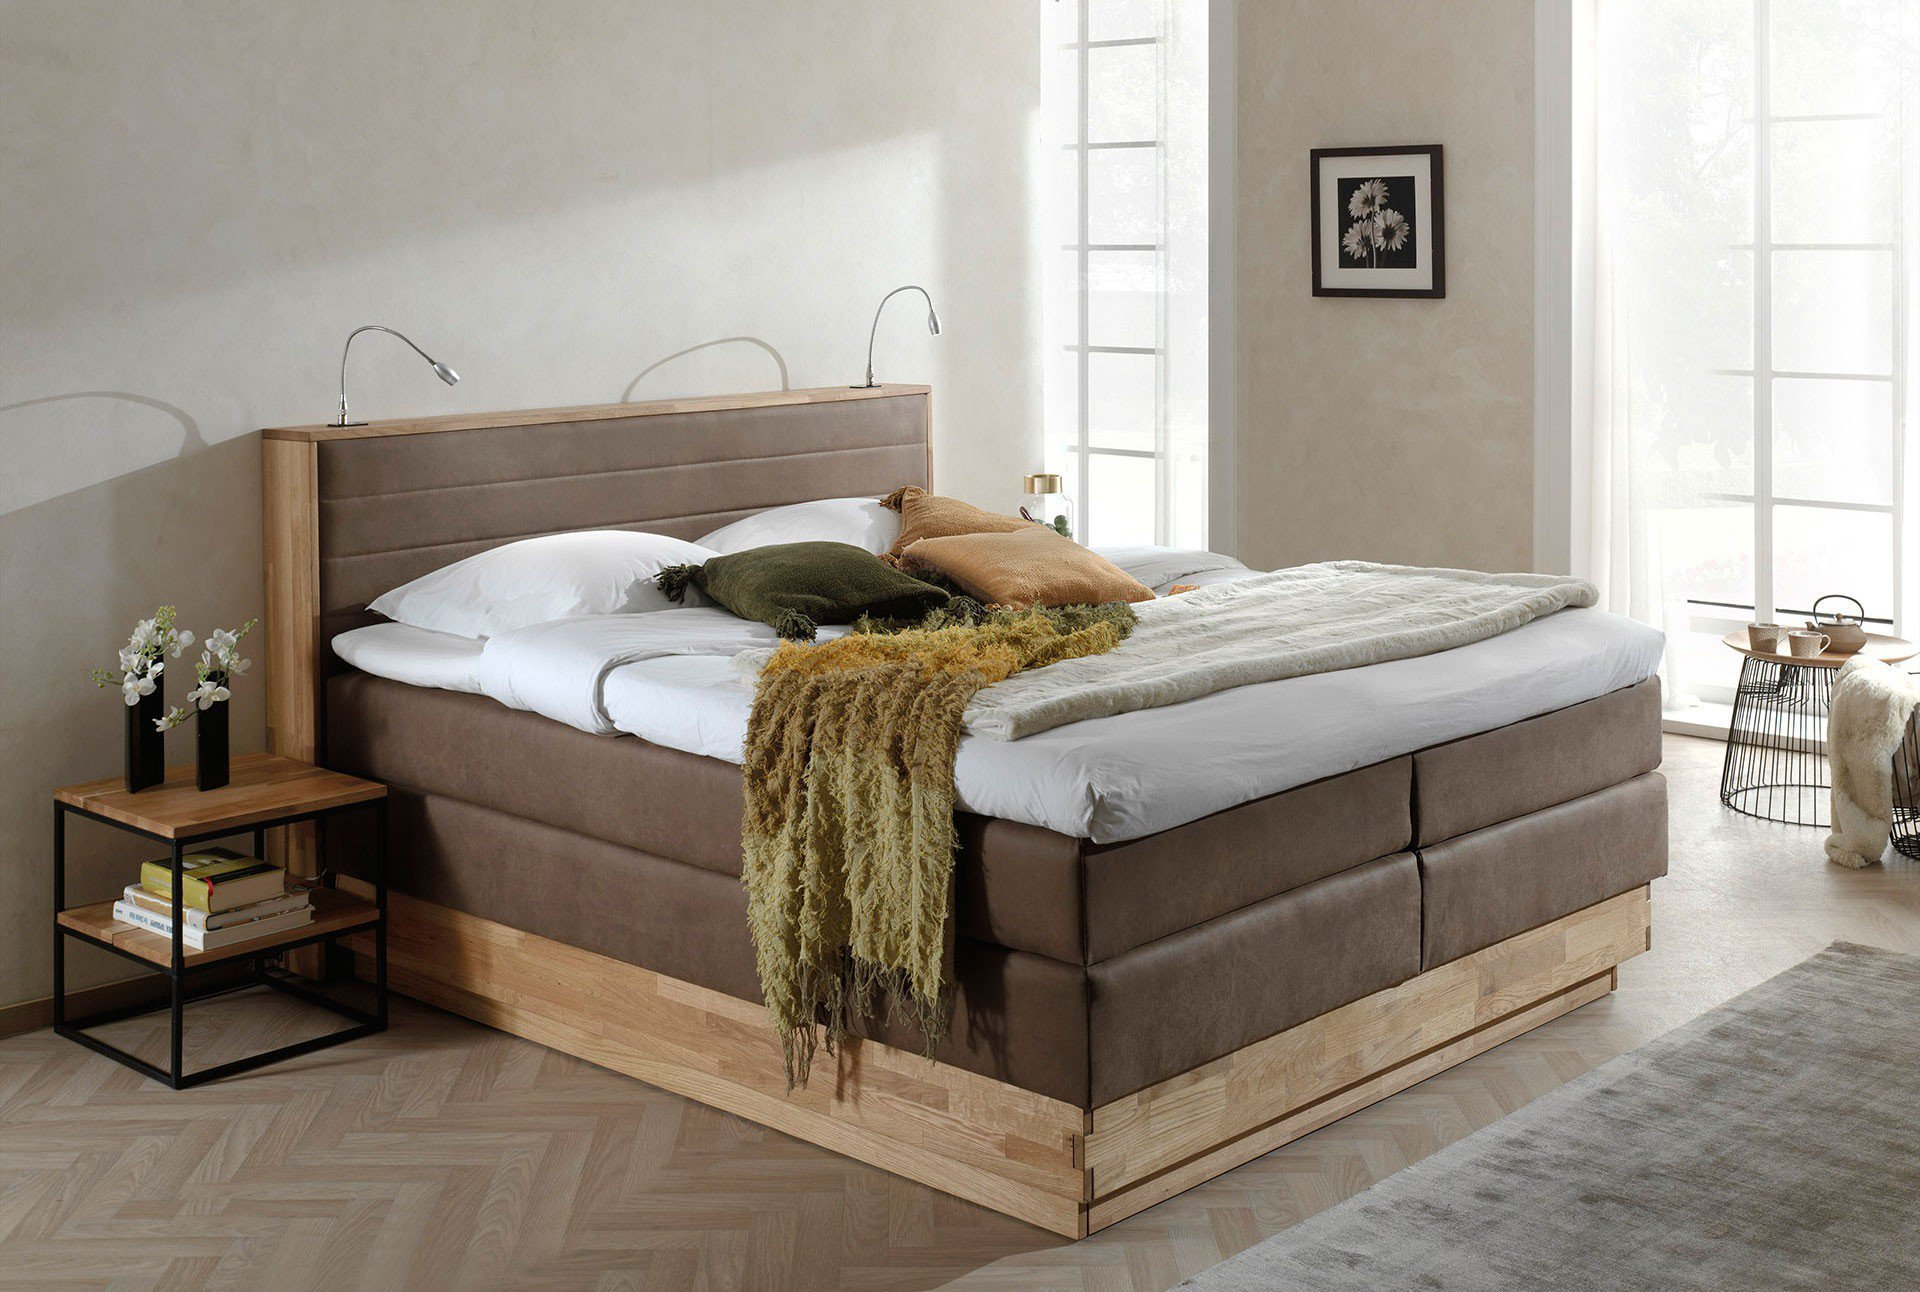 Boxspringbett 200x200 Mit Bettkasten Moneta Von Cotta Boxspringbett Brown Mit Bettkasten